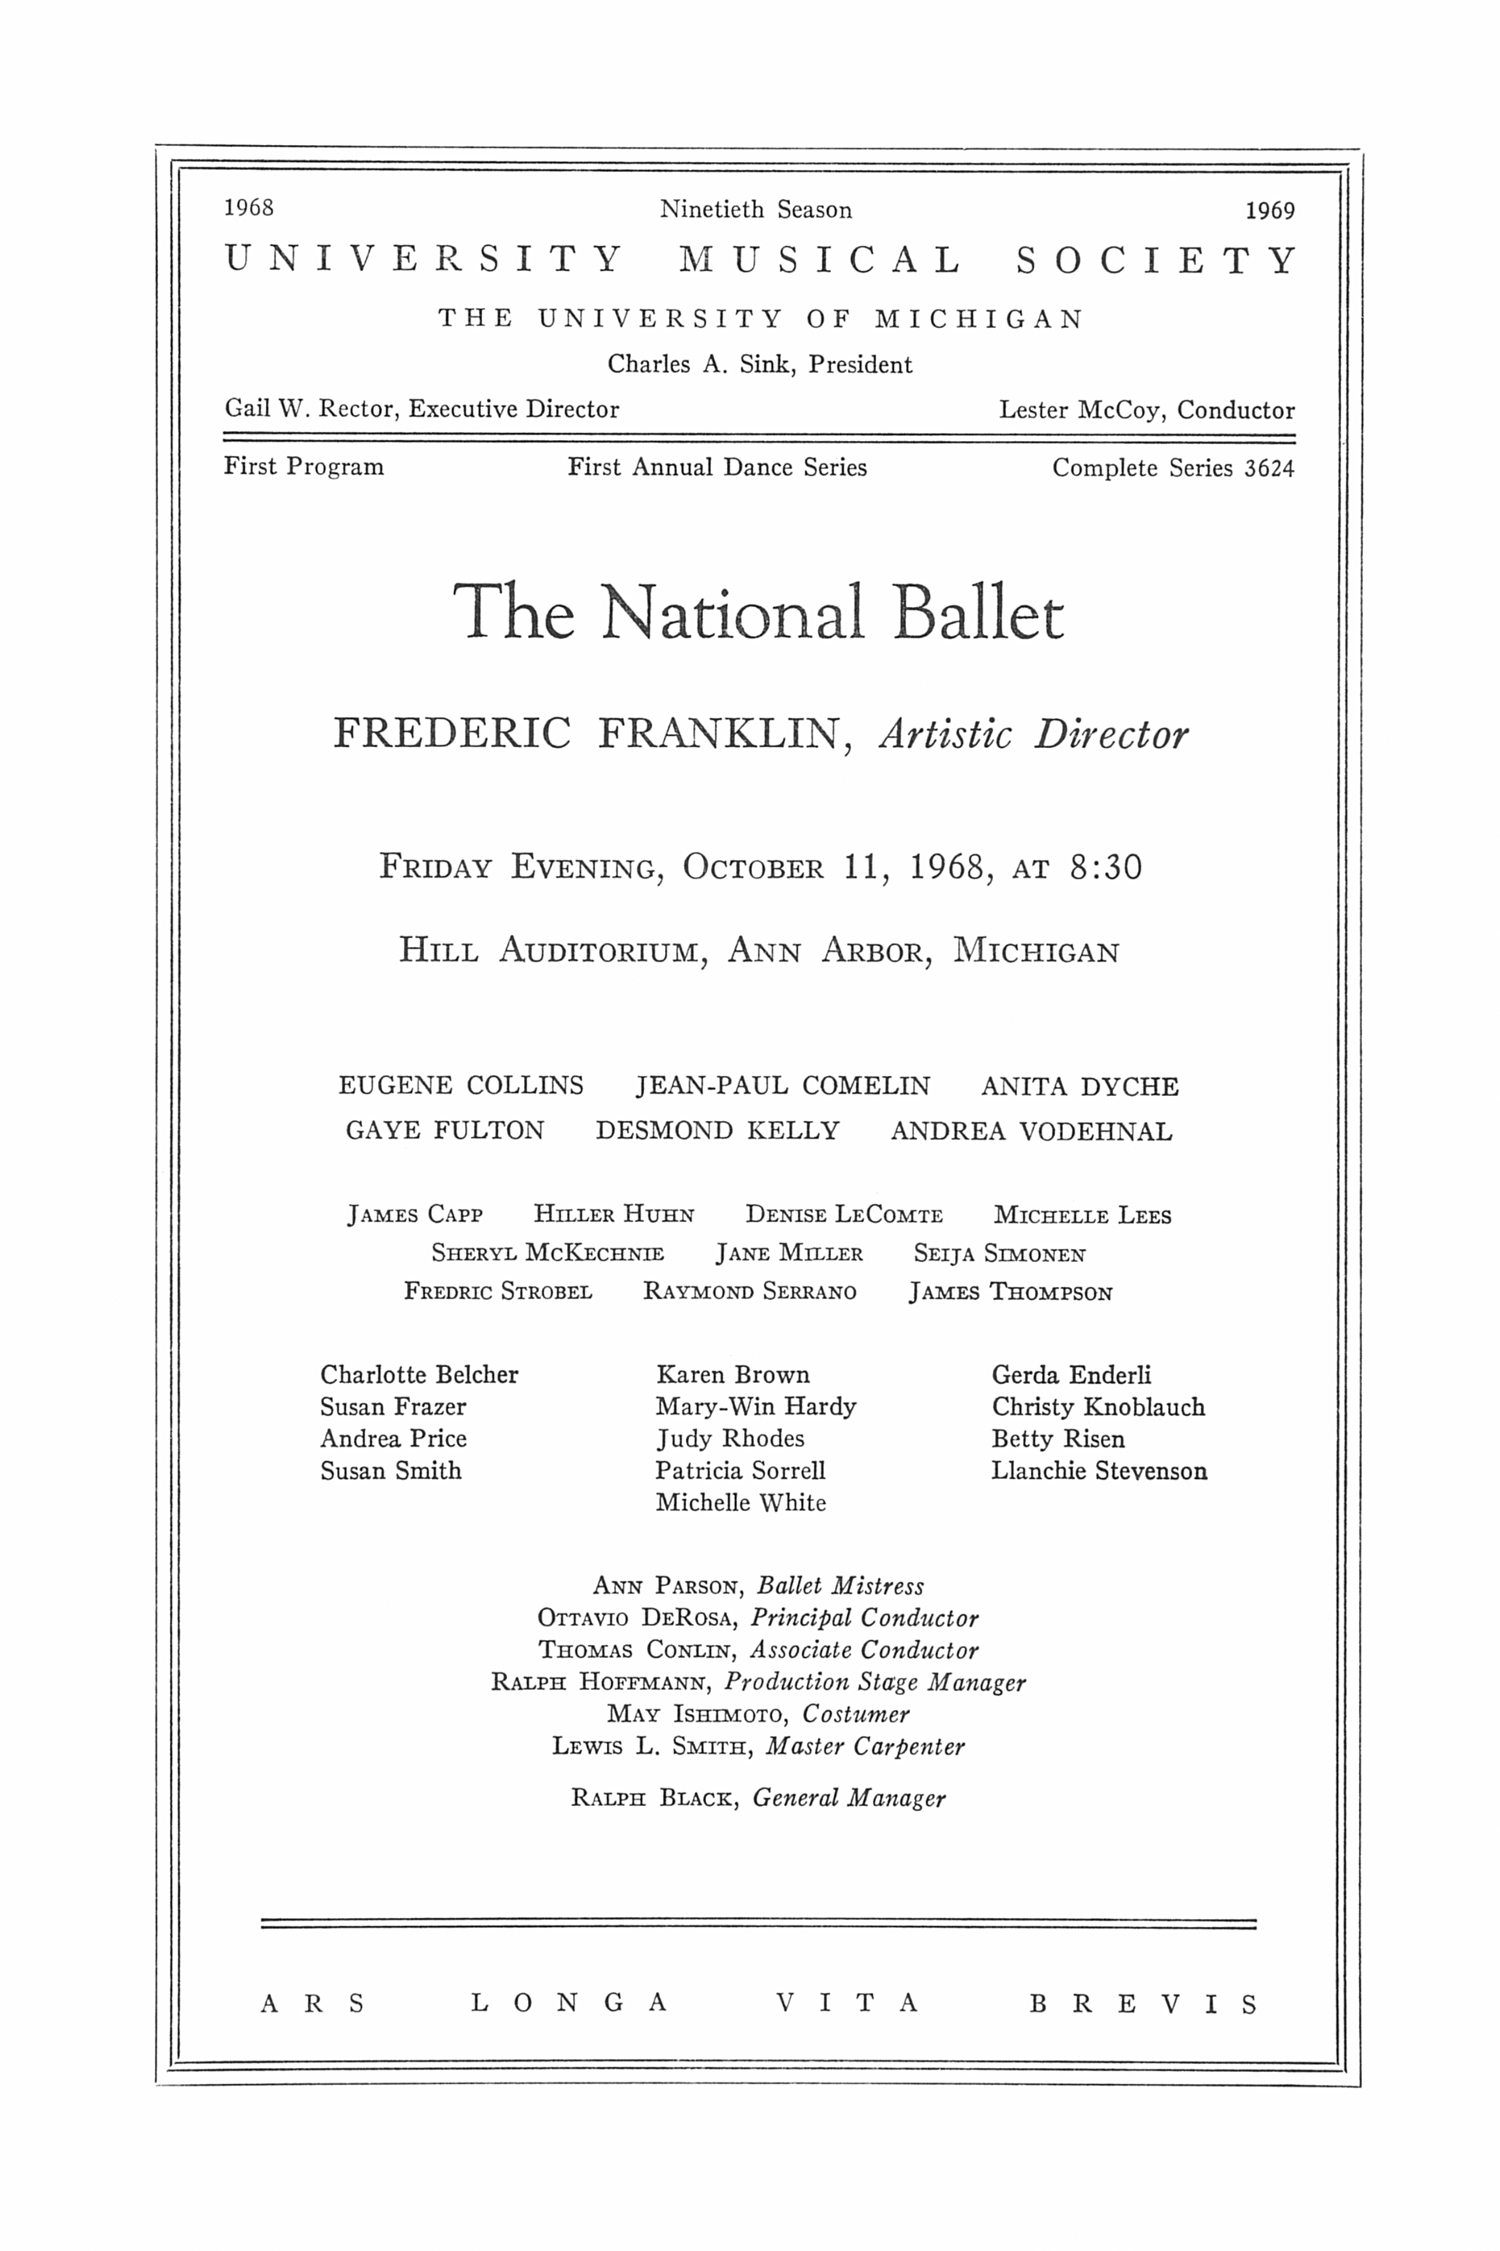 UMS Concert Program, October 11, 1968: The National Ballet -- Frederic Franklin image